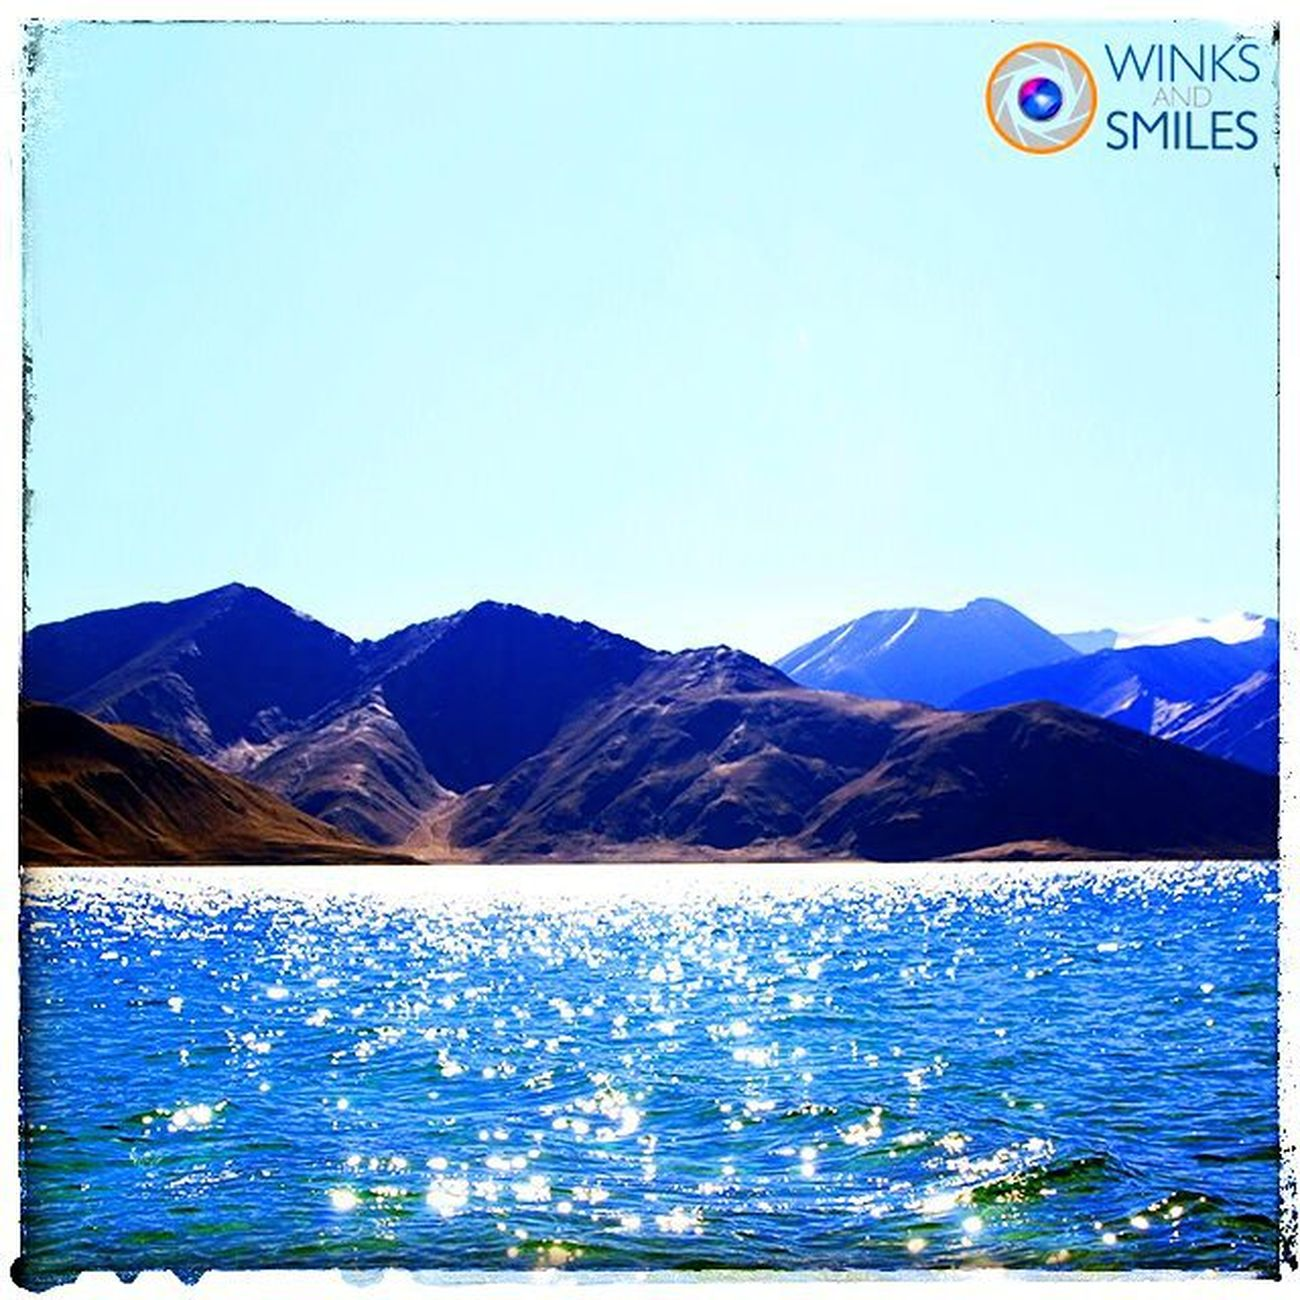 ~~~~~~~~~~~~~~~~~~~~~~~~~~~~~~~~~~ 💎 🇩🇮🇦🇲🇴🇳🇩🇸 & 🇸🇦🇵🇵🇭🇮🇷🇪 💎 ~~~~~~~~~~~~~~~~~~~~~~~~~~~~~~~~~~ 💦BEAUTIFUL PANGONG LAKE, LEH LADAKH💦 ~~~~~~~~~~~~~~~~~~~~~~~~~~~~~~~~~~ All images are subject to ©copyright No repost, regram or reproduce without prior permission All rights reserved ~~~~~~~~~~~~~~~~~~~~~~~~~~~~~~~~~~ Pangonglake LehLadakh India Convexrevolution Incredibleindia Landscape_captures Framesofindia Landscapeofinstagram Ladakhdiaries2015 Indianphotographer Travelgram Thebestofthis Landscapephotography Walknclick Photographers_of_india Instapic Instapicoftheday VSCO Blue Lakesofinstagram Indiaclicks Holiday Ig_photoclub Click_india_click Ig_himalaya explorethroughcamera UnExploredParadise exploreindia yin_india igphotoworld